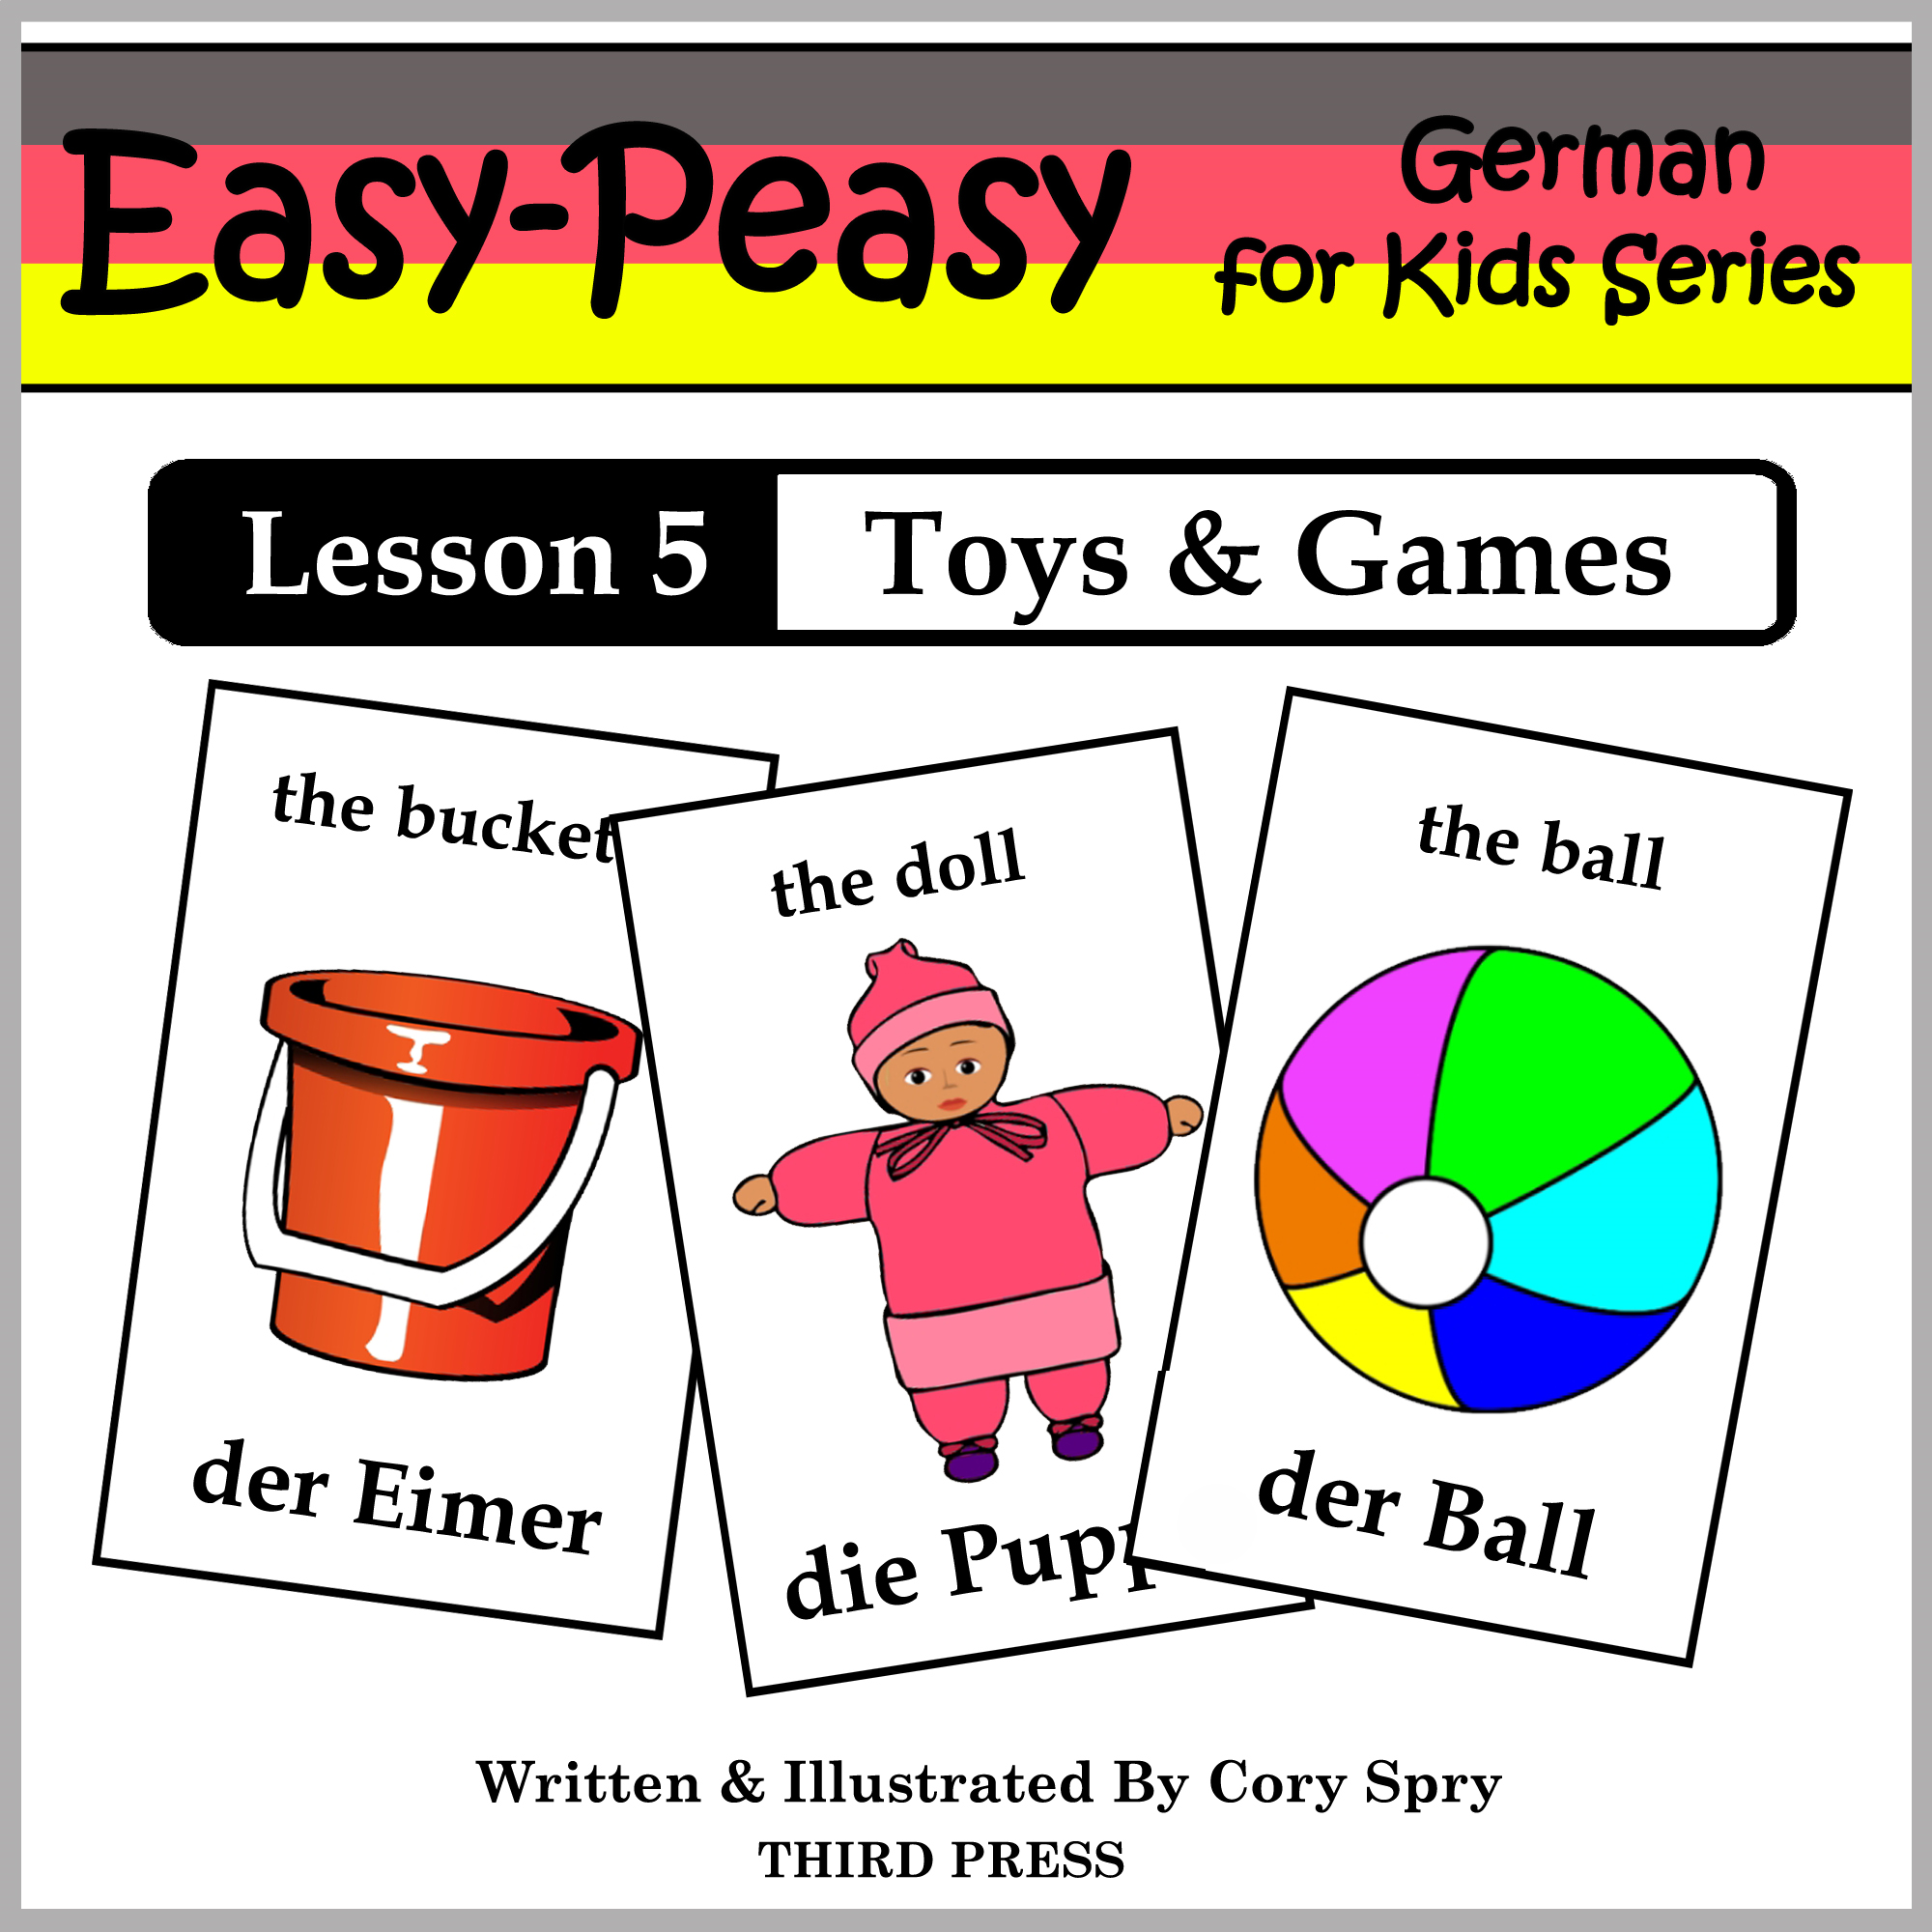 German Lesson 5: Toys & Games